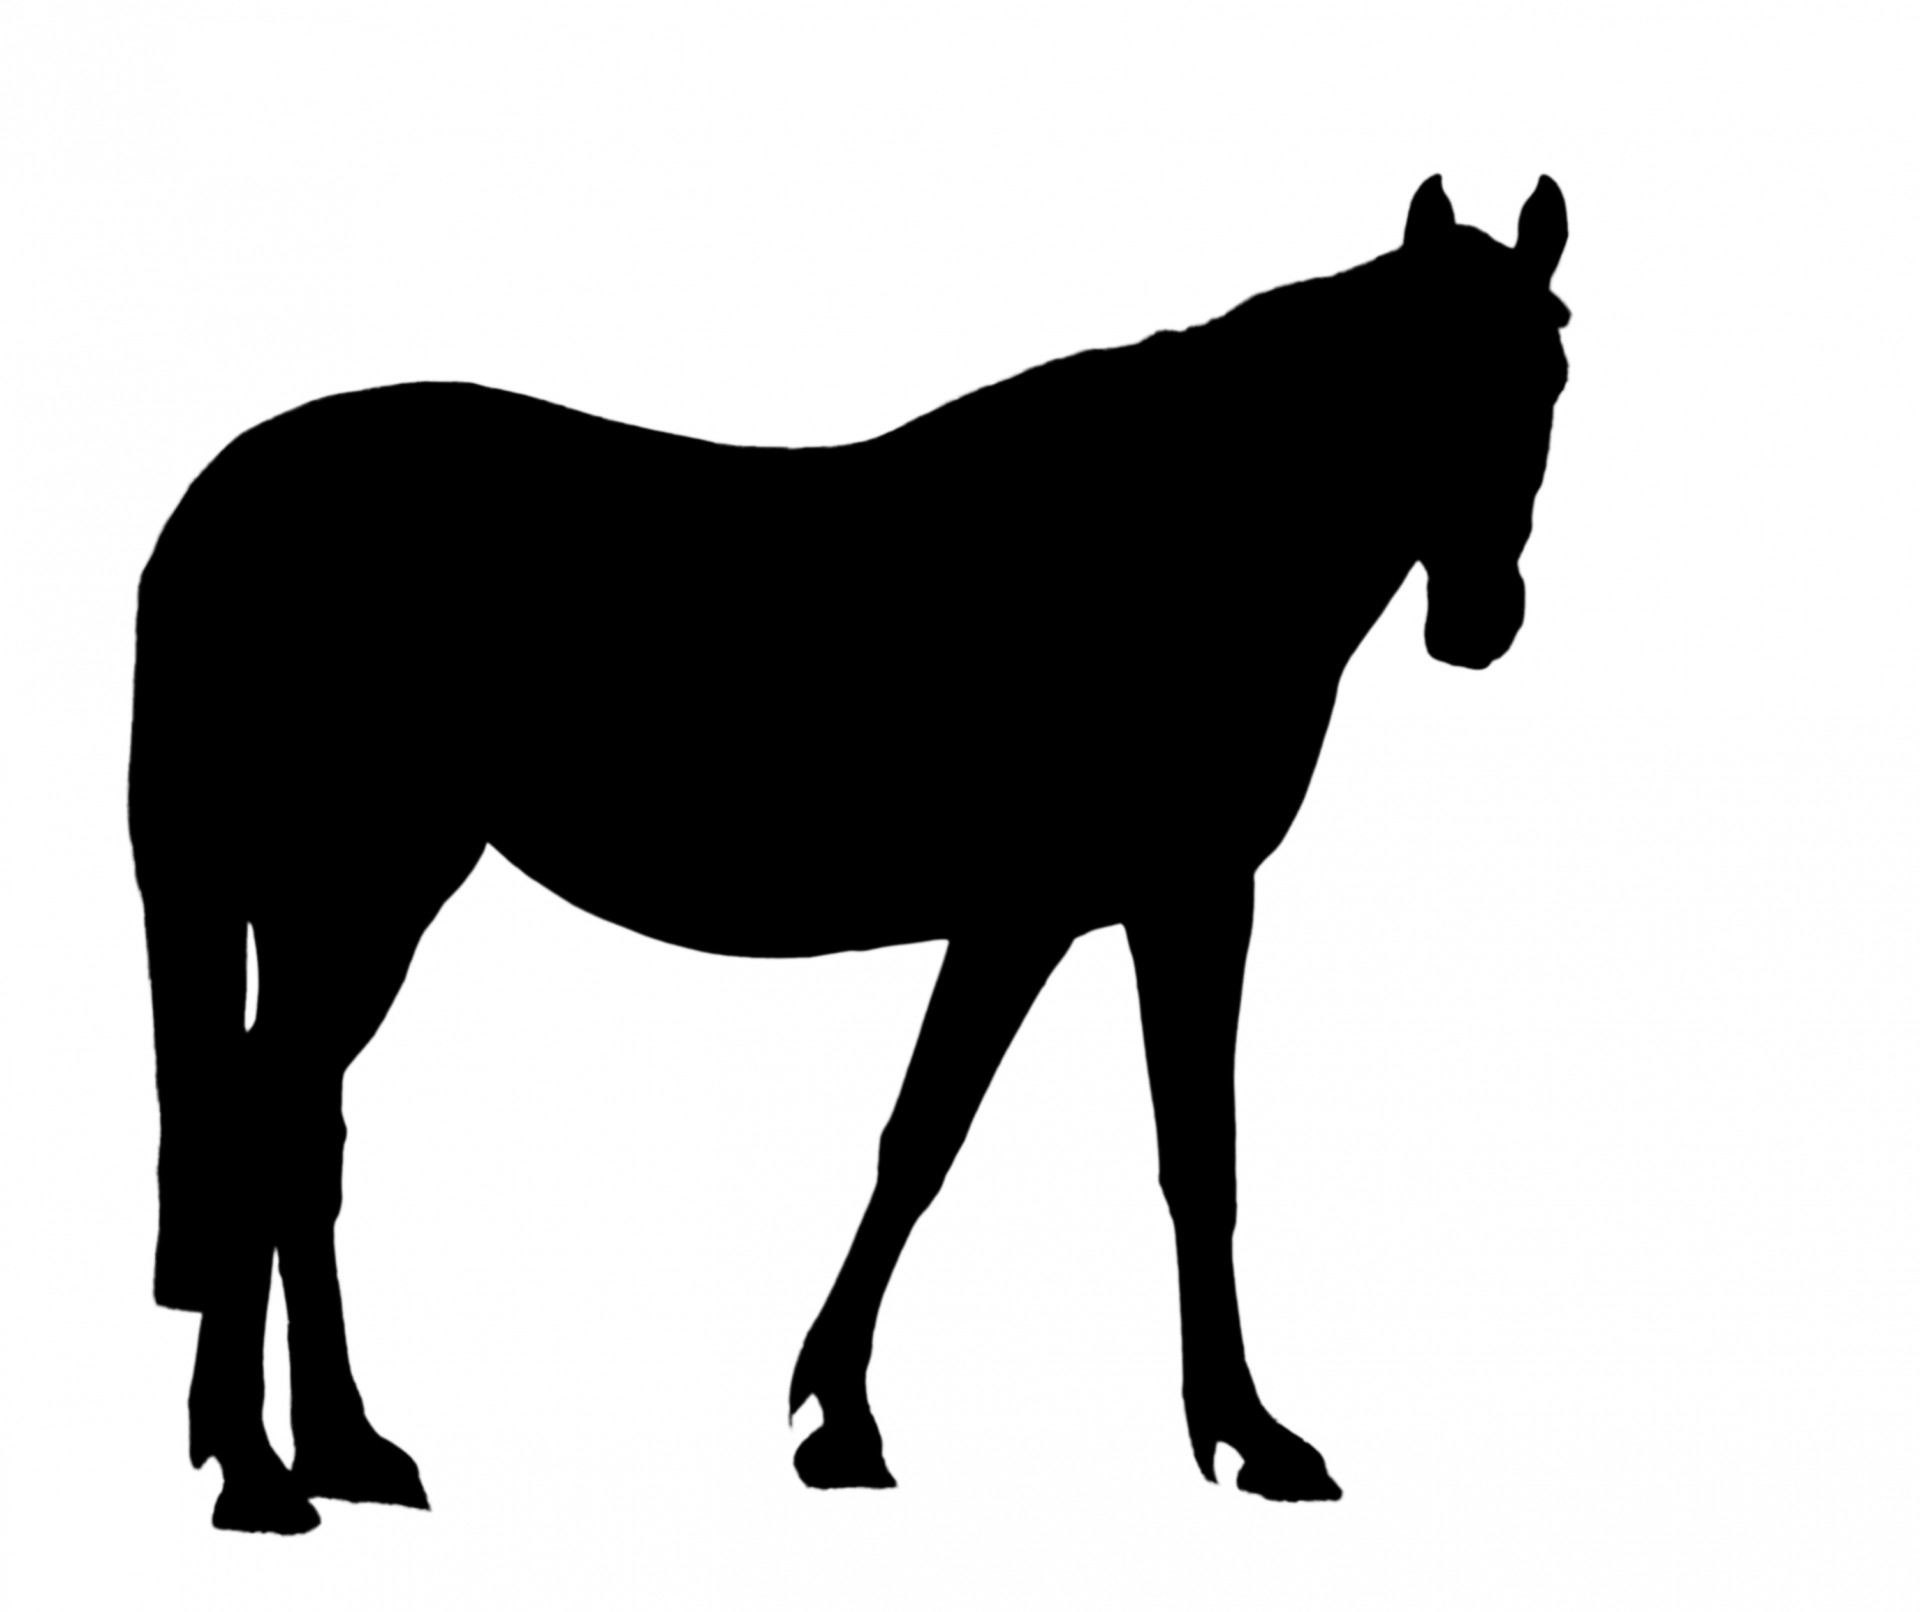 horse clipart silhouette at getdrawings com free for personal use rh getdrawings com dressage horse silhouette clip art horse head silhouette clip art